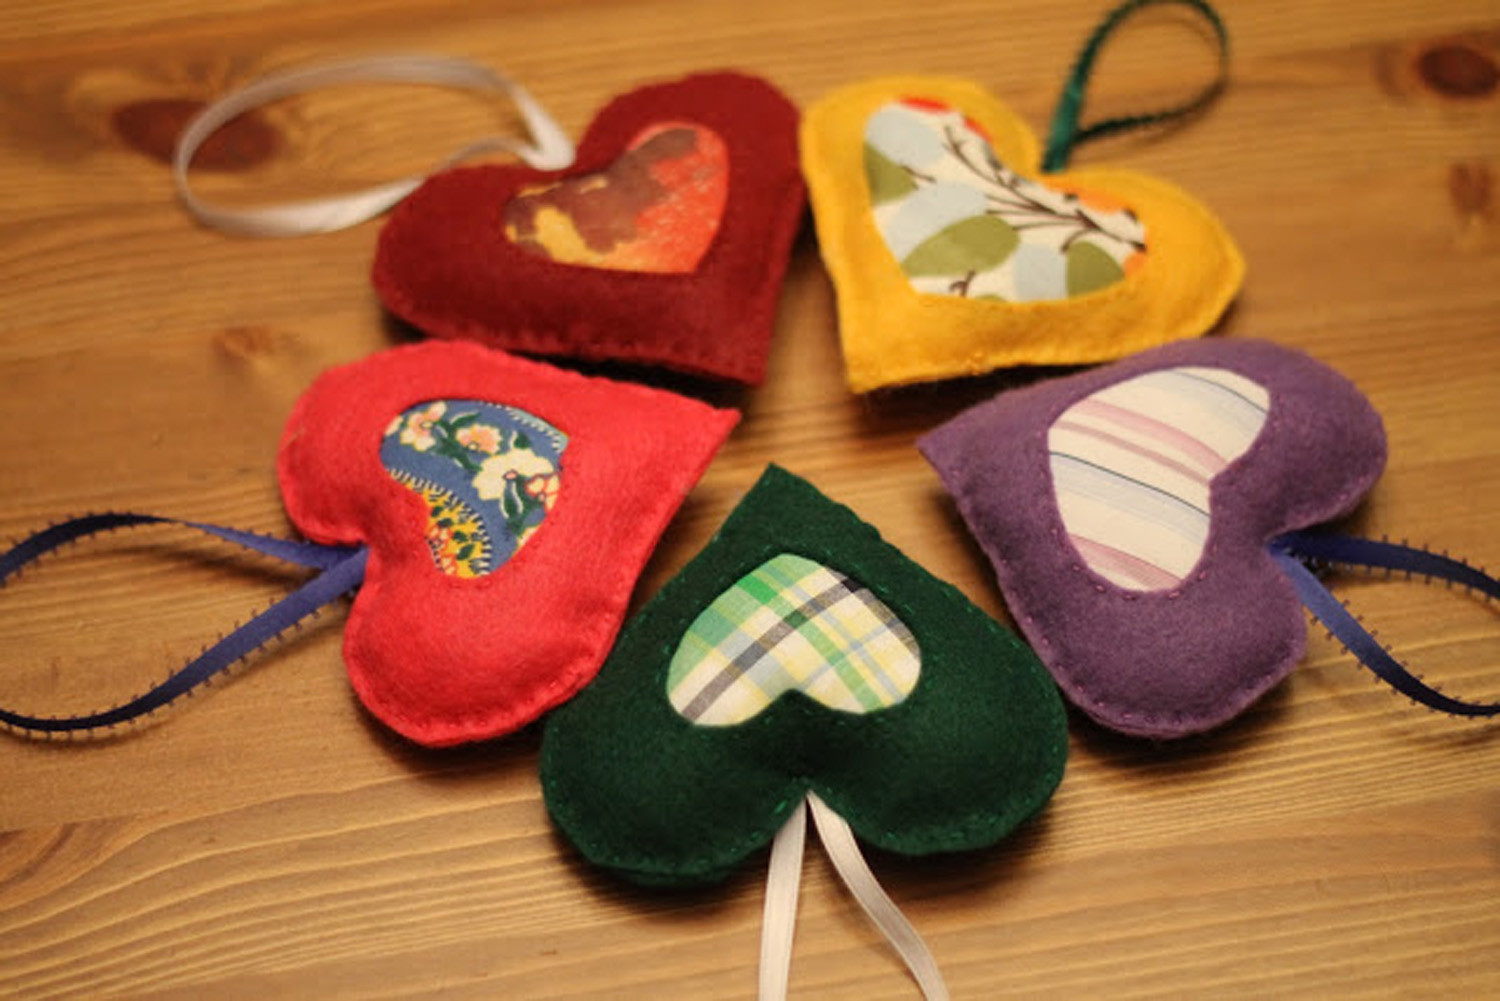 DIY Gifts That Say I Love You  Six DIY Gifts to Say 'I Love You' American Profile